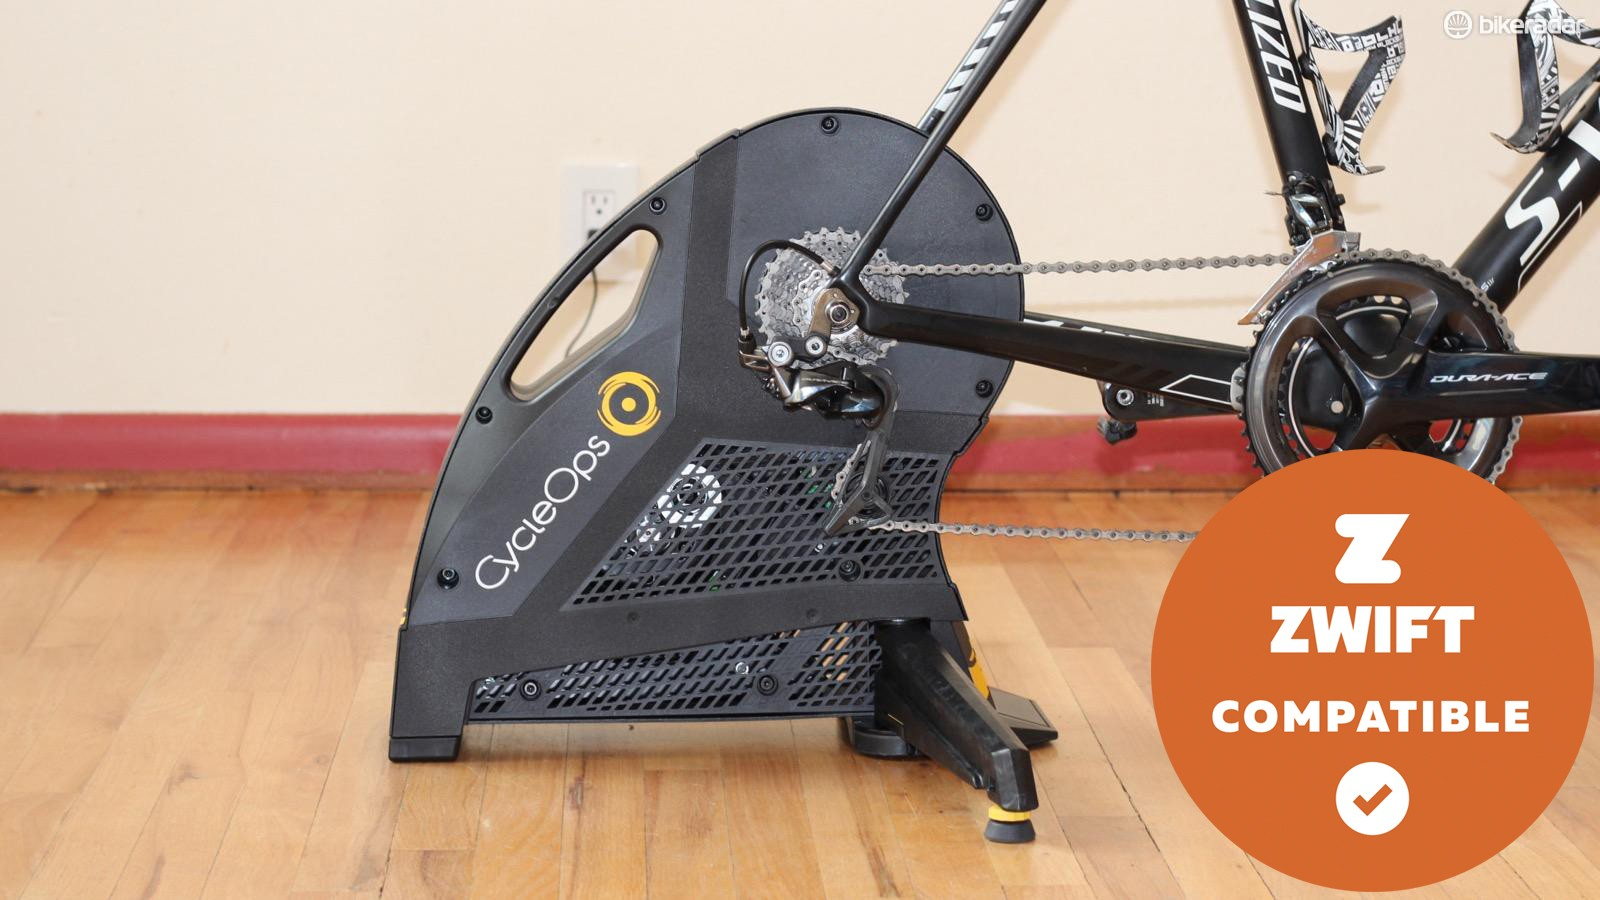 The CycleOps Hammer direct drive smart trainer is an excellent companion for Zwift or TrainerRoad